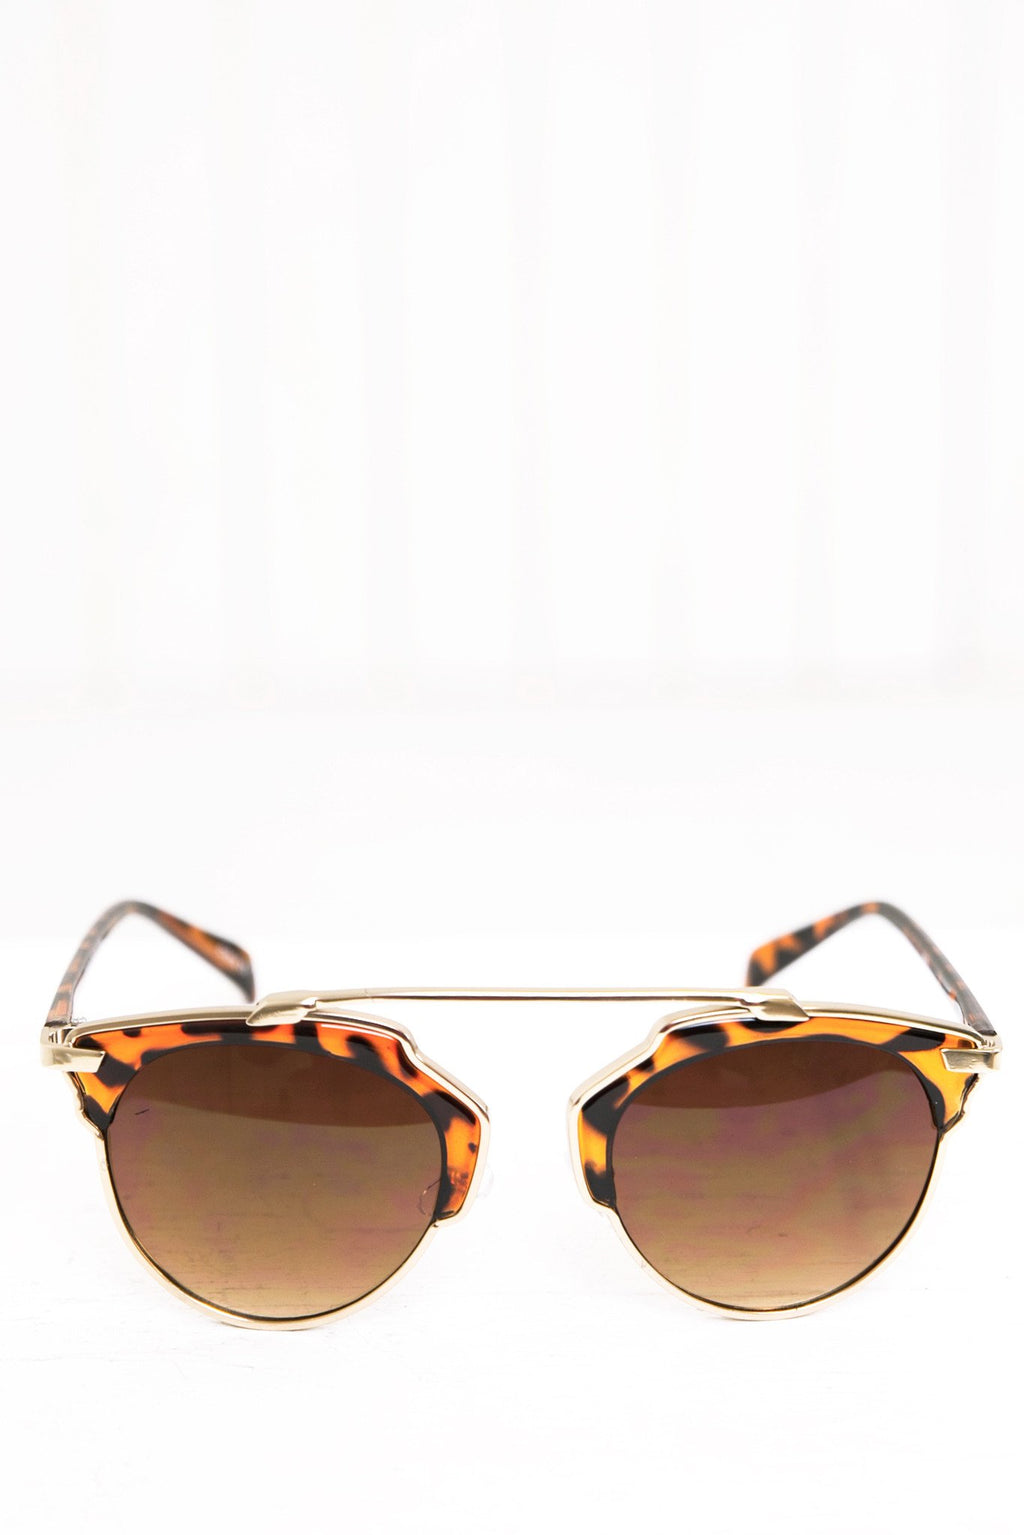 Alise Aviator Shades - Brown/Gold - Haute & Rebellious